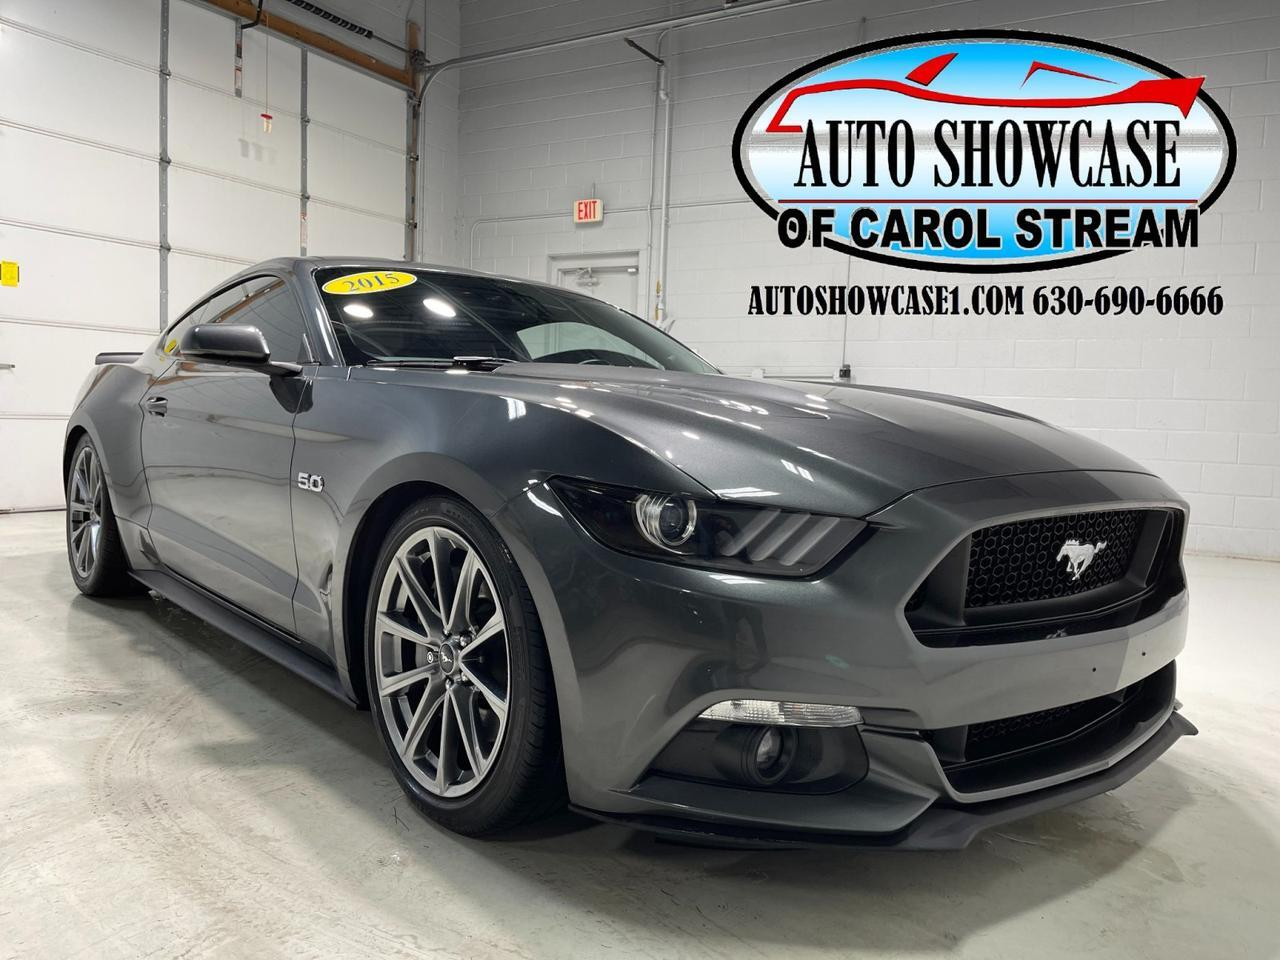 2015 Ford Mustang GT Premium Carol Stream IL